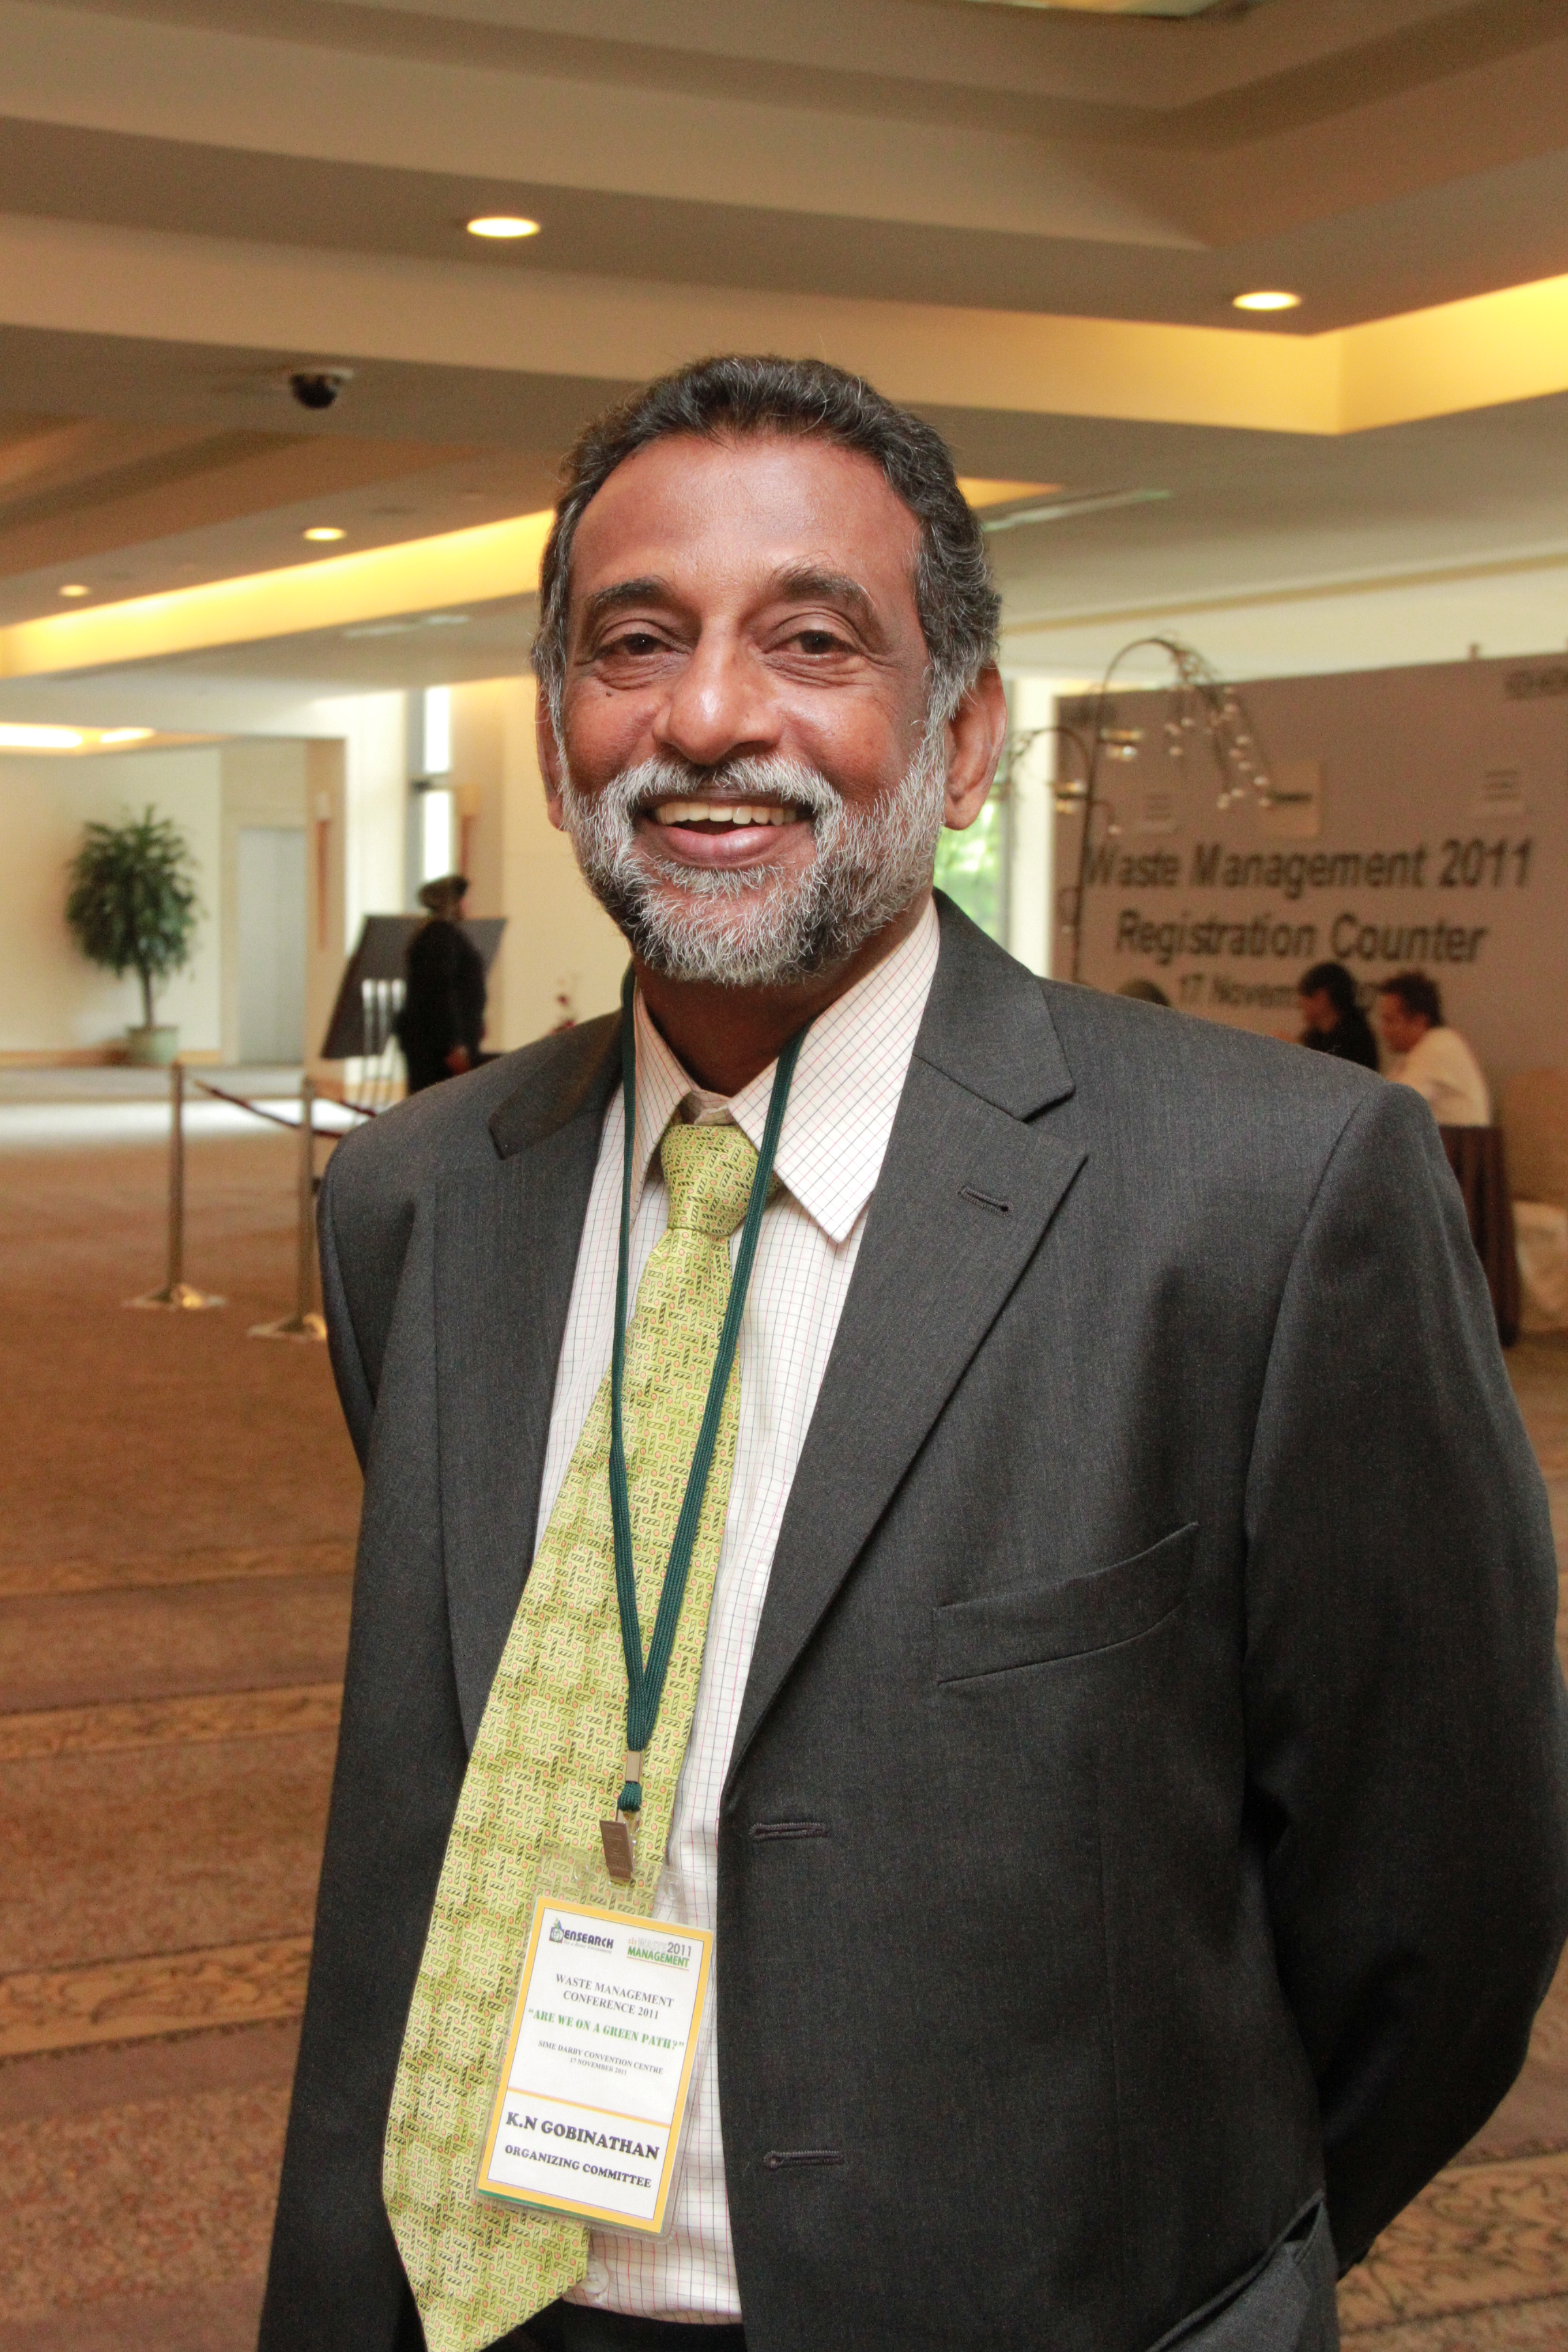 MR k n GOBInathan - Vice President, ENSEARCH